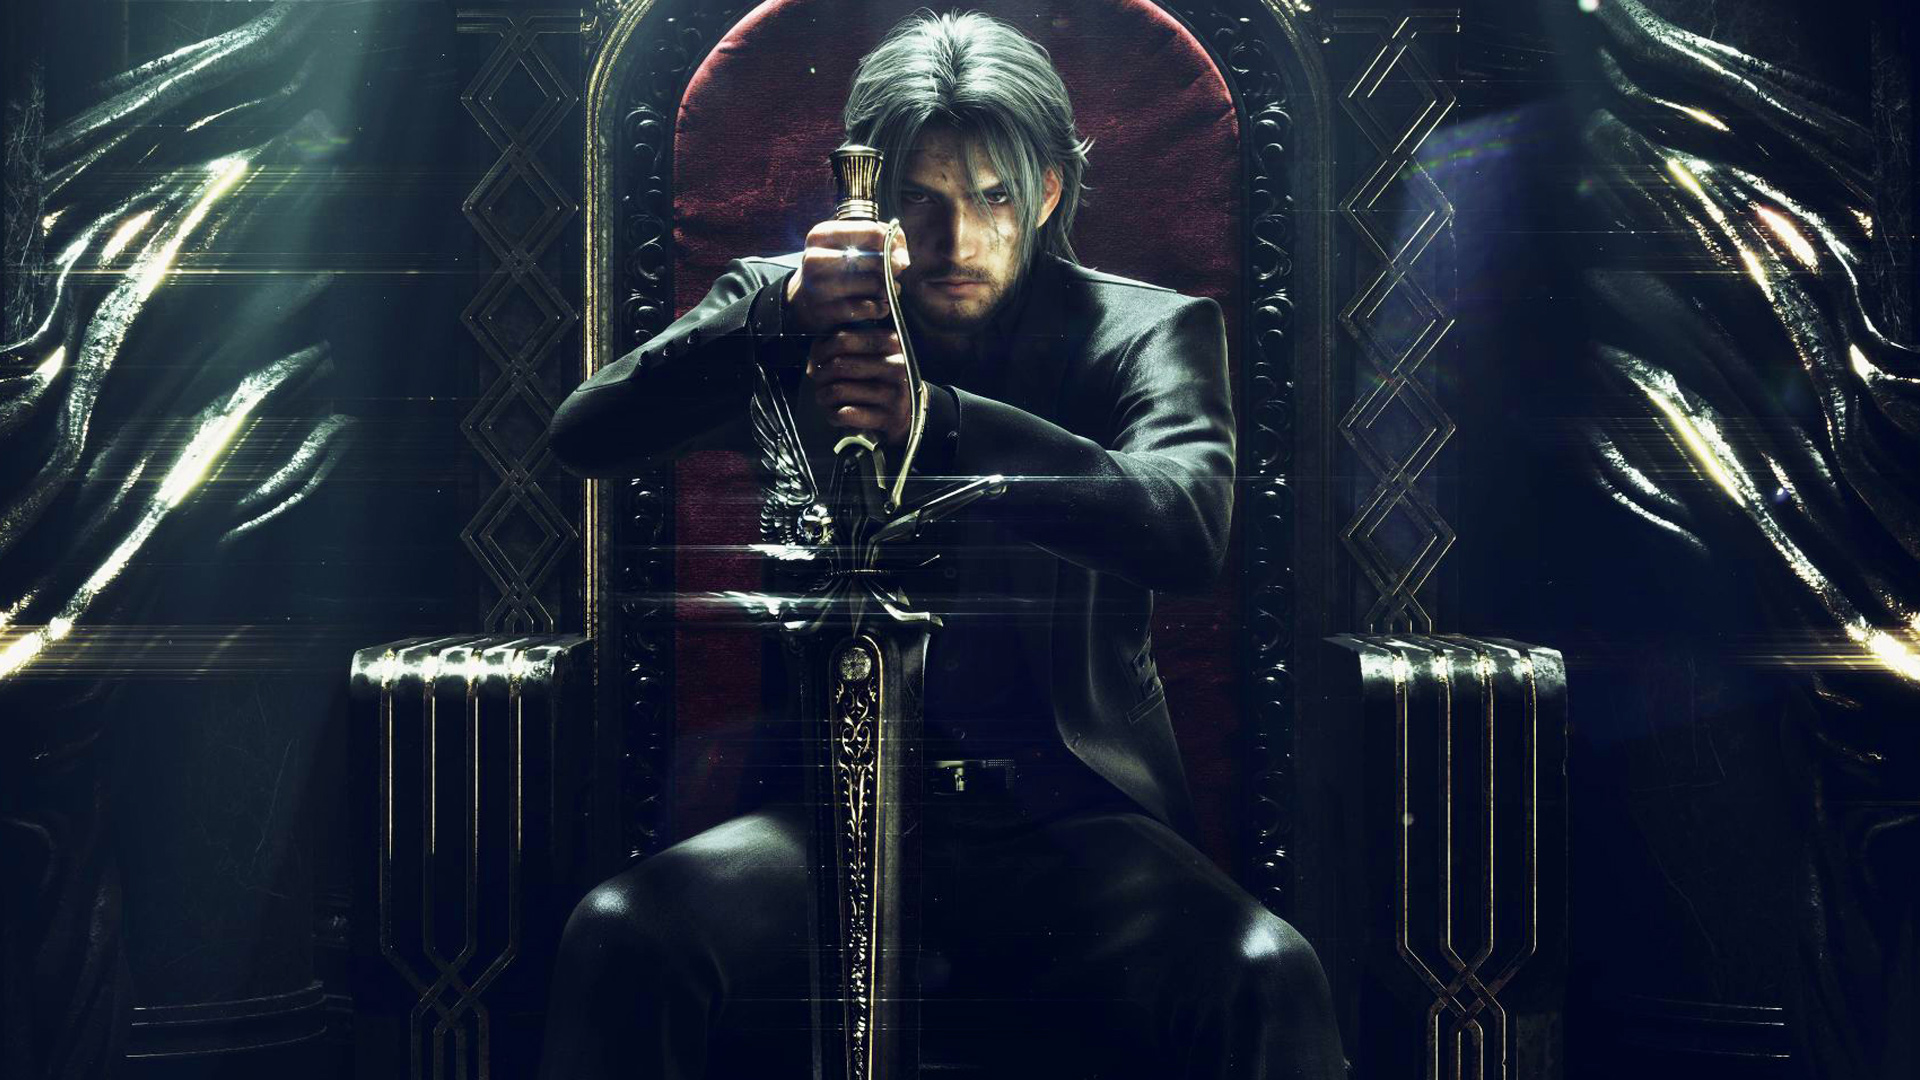 Final Fantasy Xv Wallpapers The Best 79 Images In 2018: Final Fantasy XV Windows Edition Game Reviews